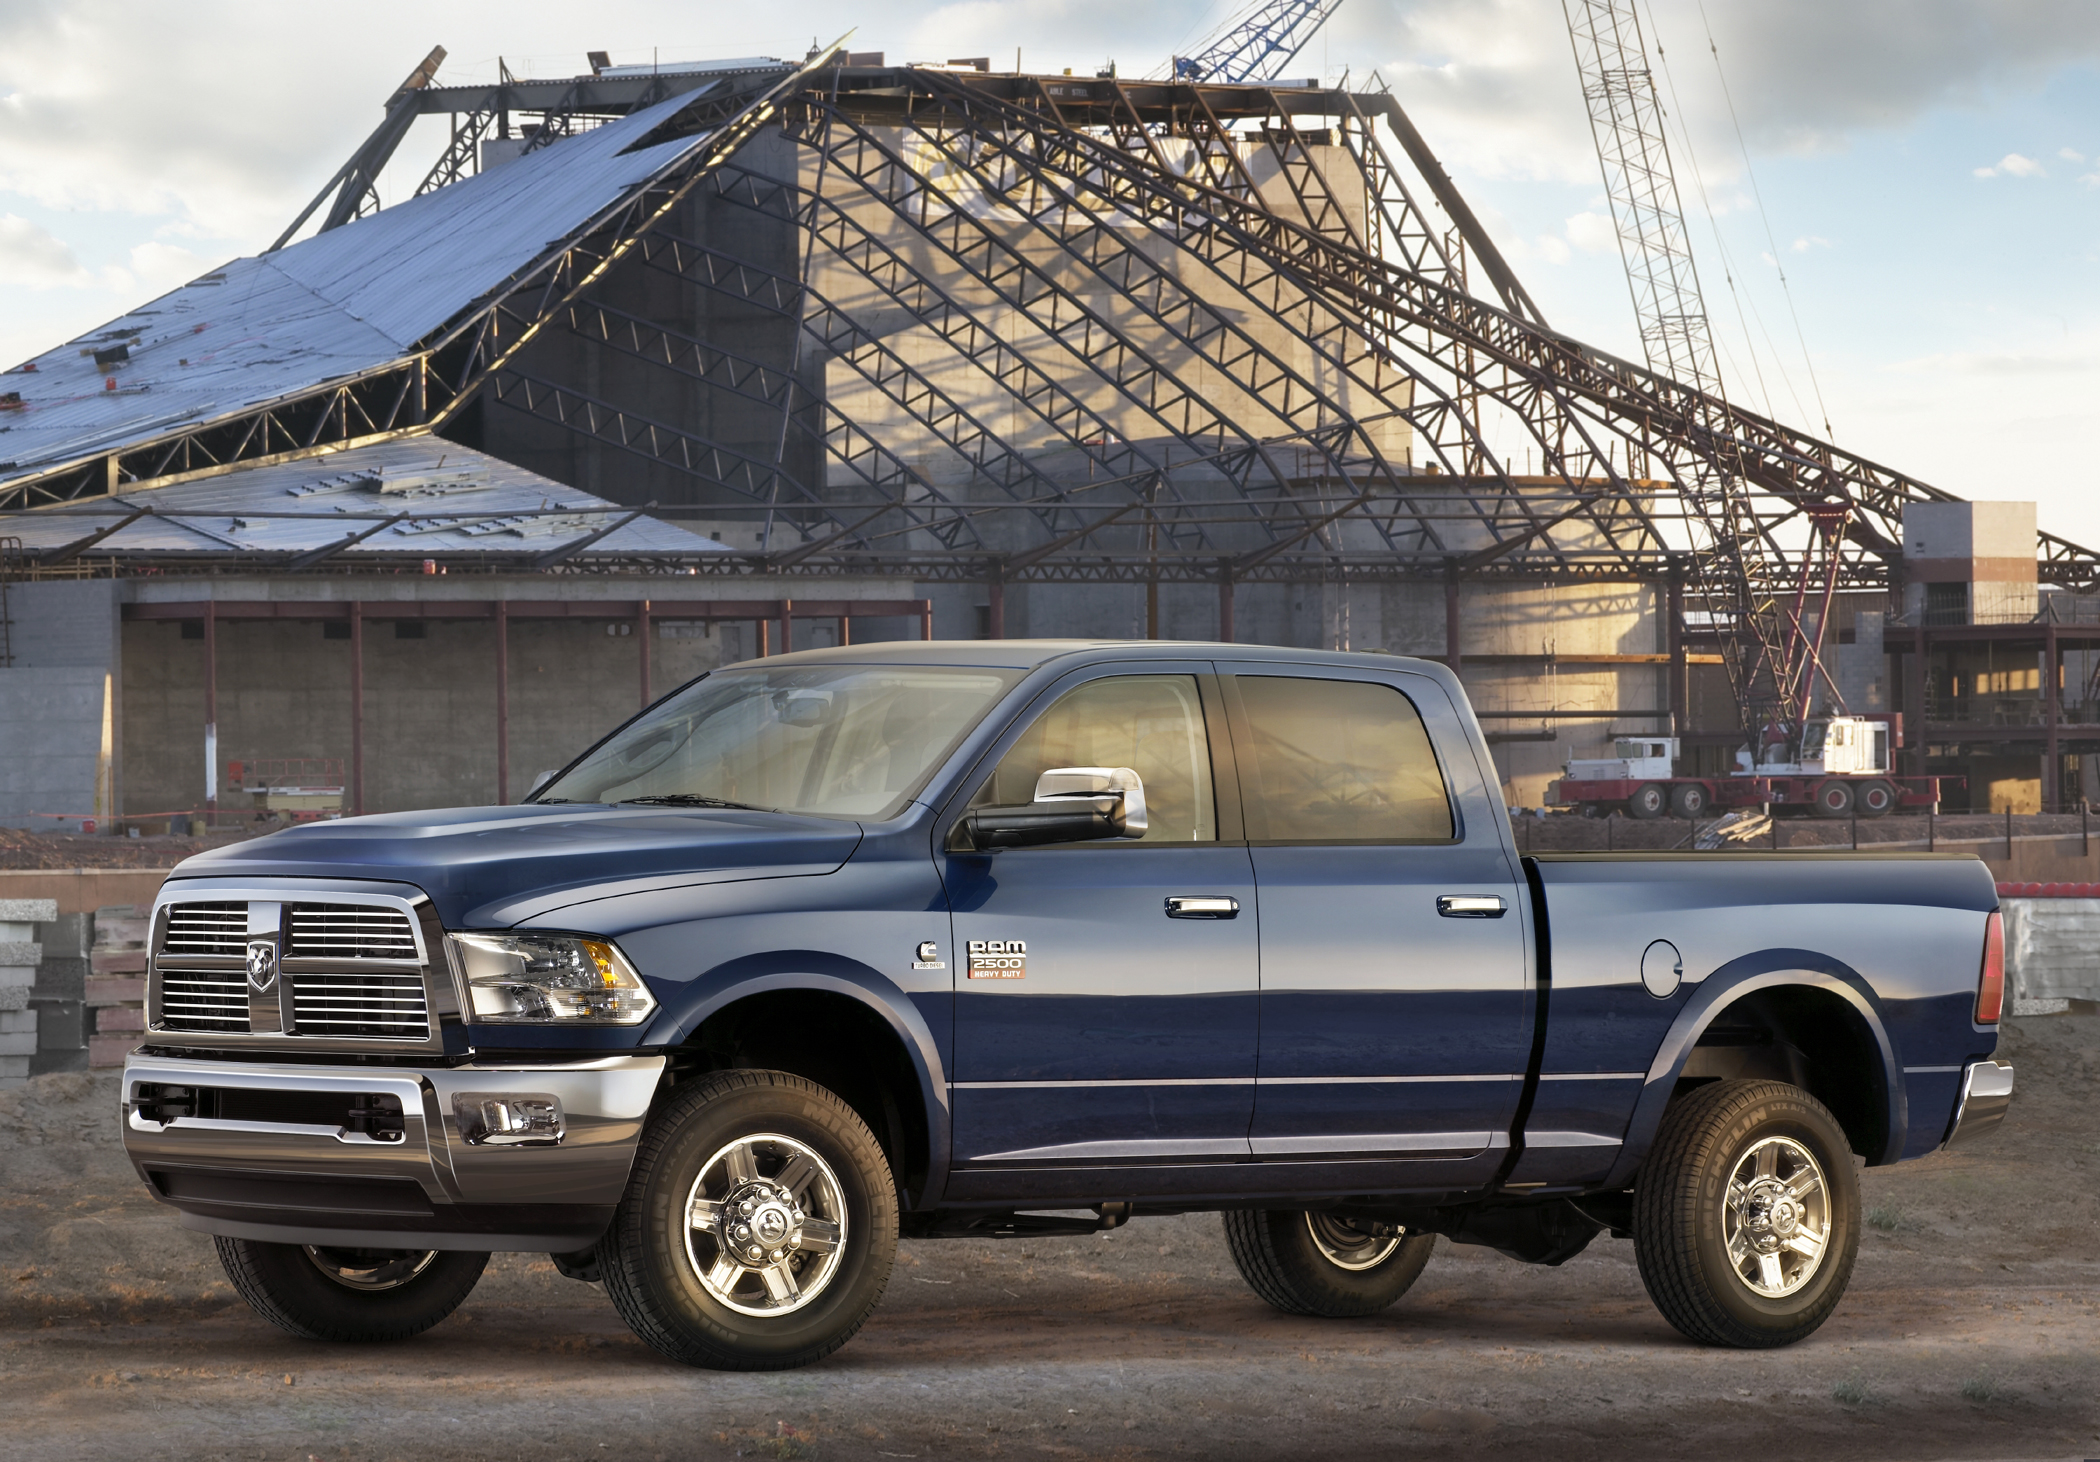 Ram heavy duties are available in five trims st slt trx laramie and power wagon two box sizes 6 feet 4 inches and 8 feet are available